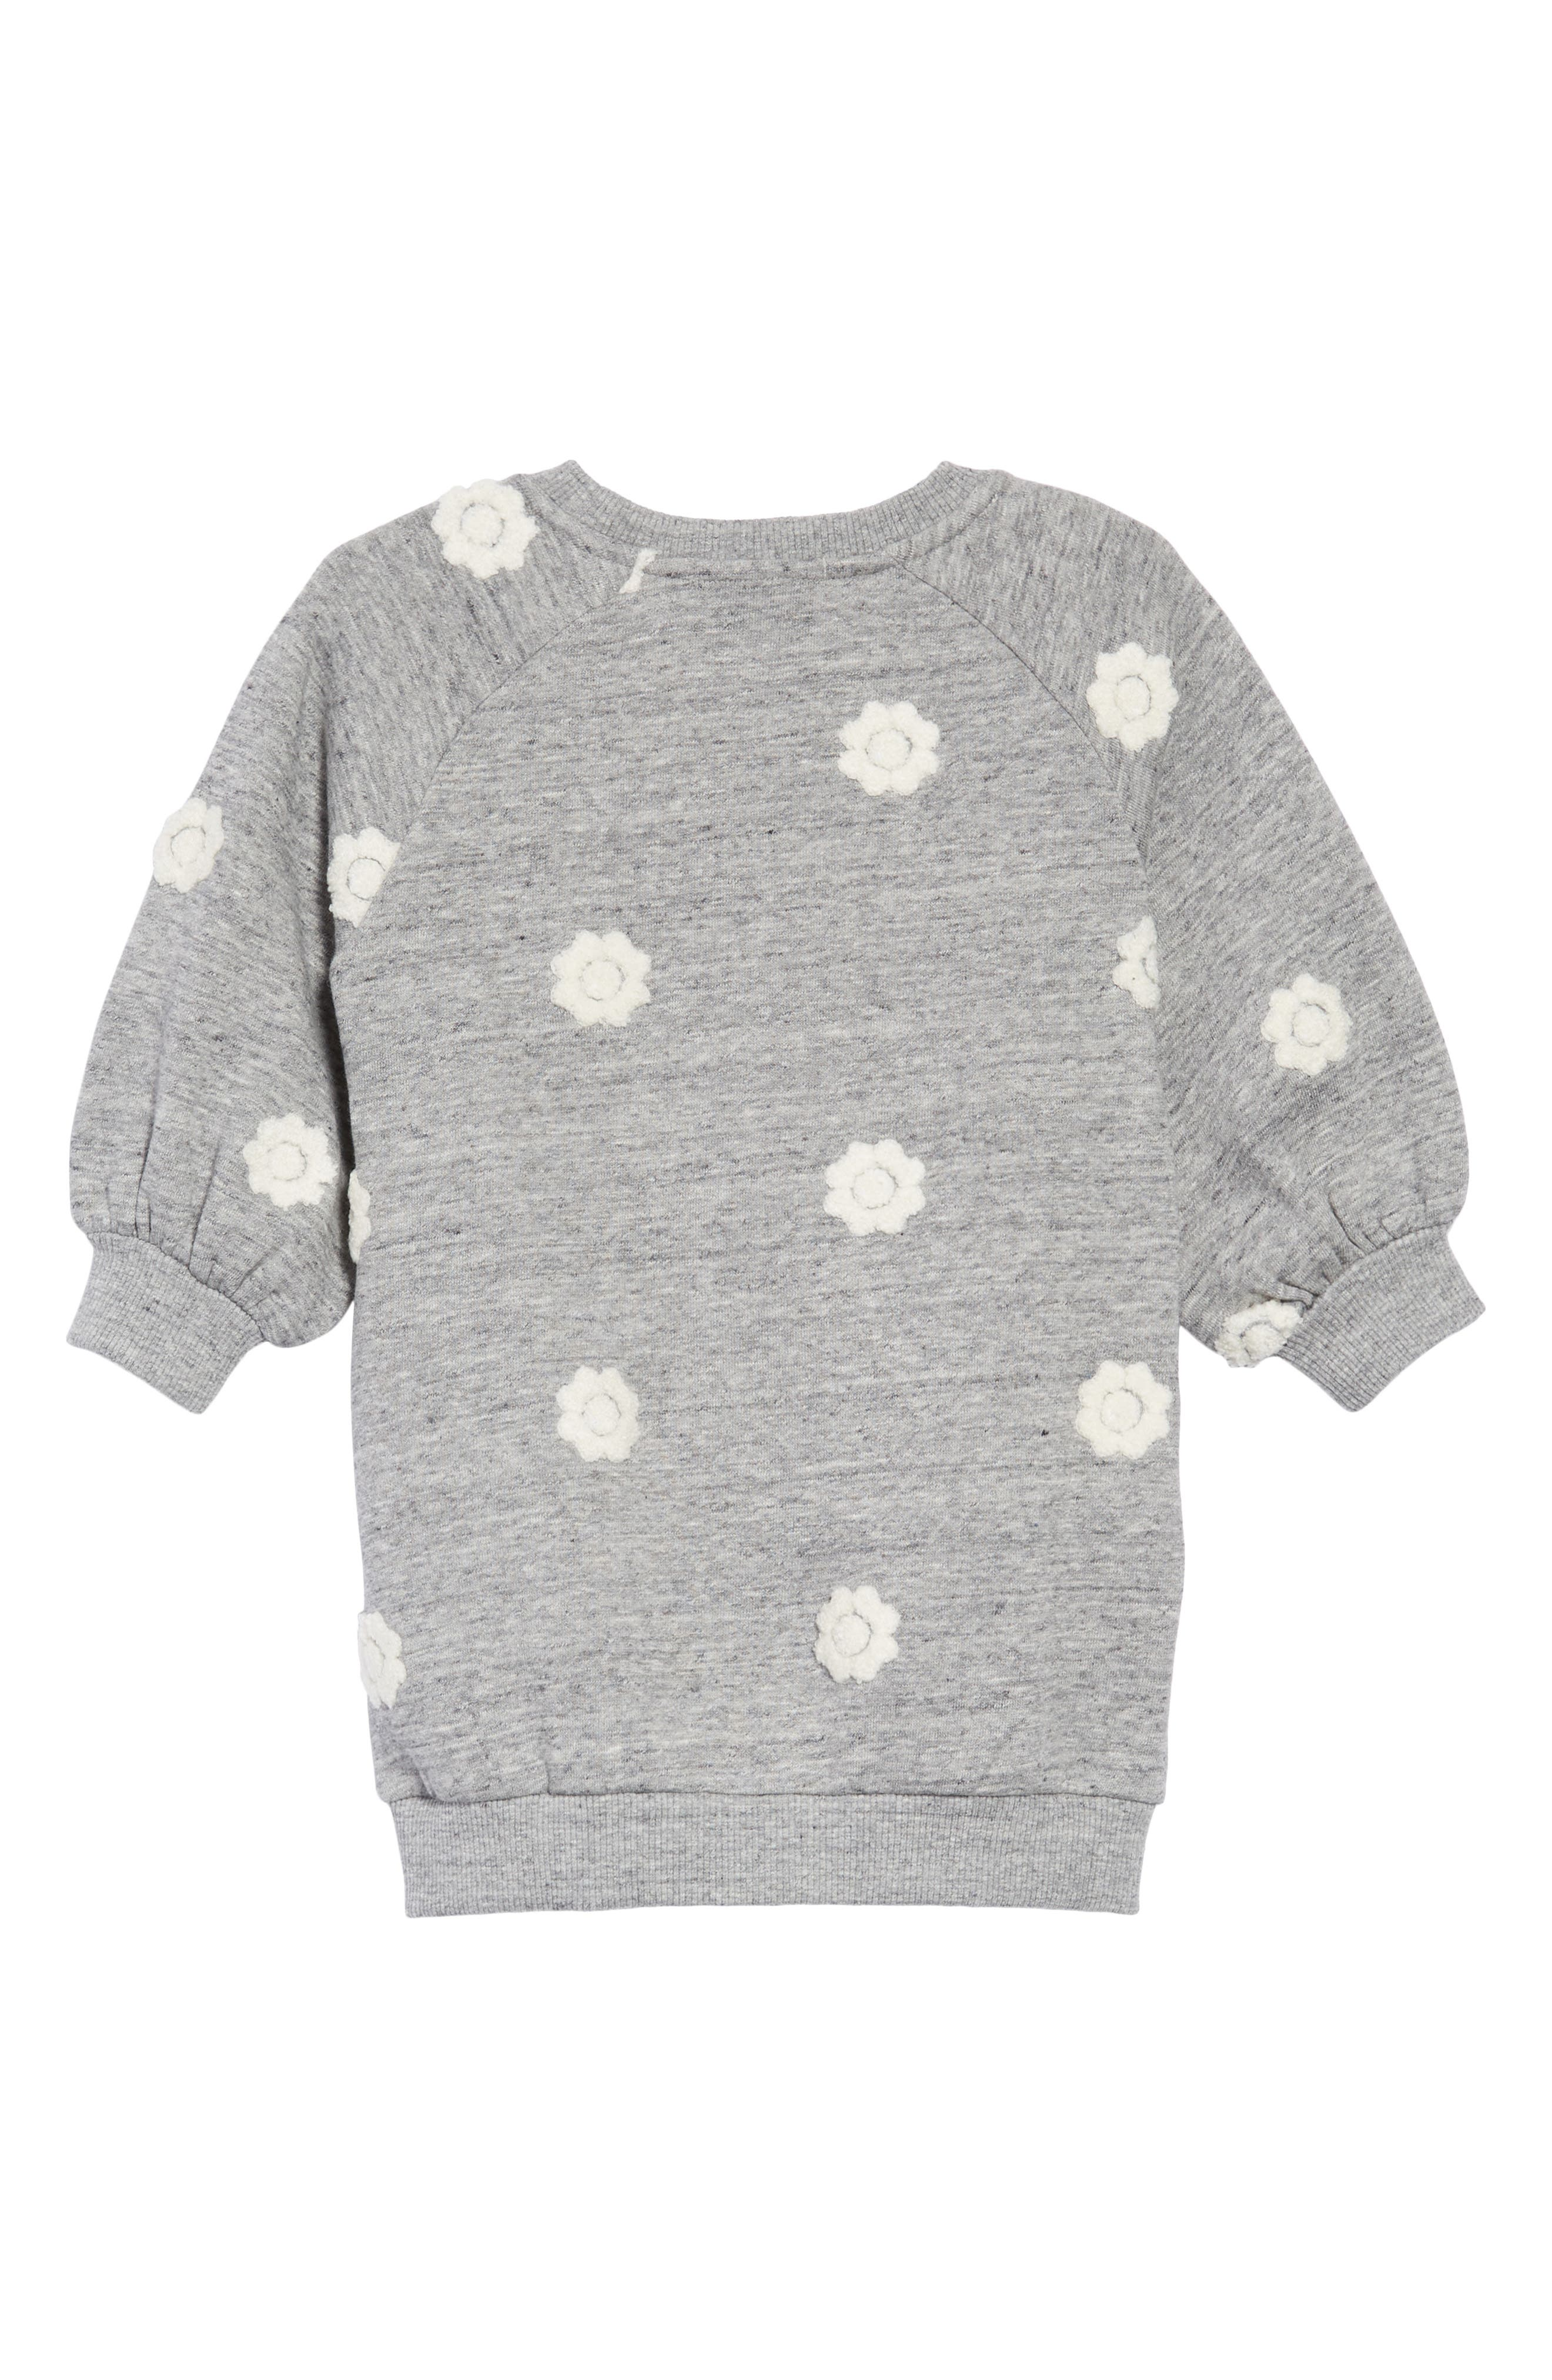 Floral Embroidered Sweatshirt Dress,                             Alternate thumbnail 2, color,                             GRIS CHINE